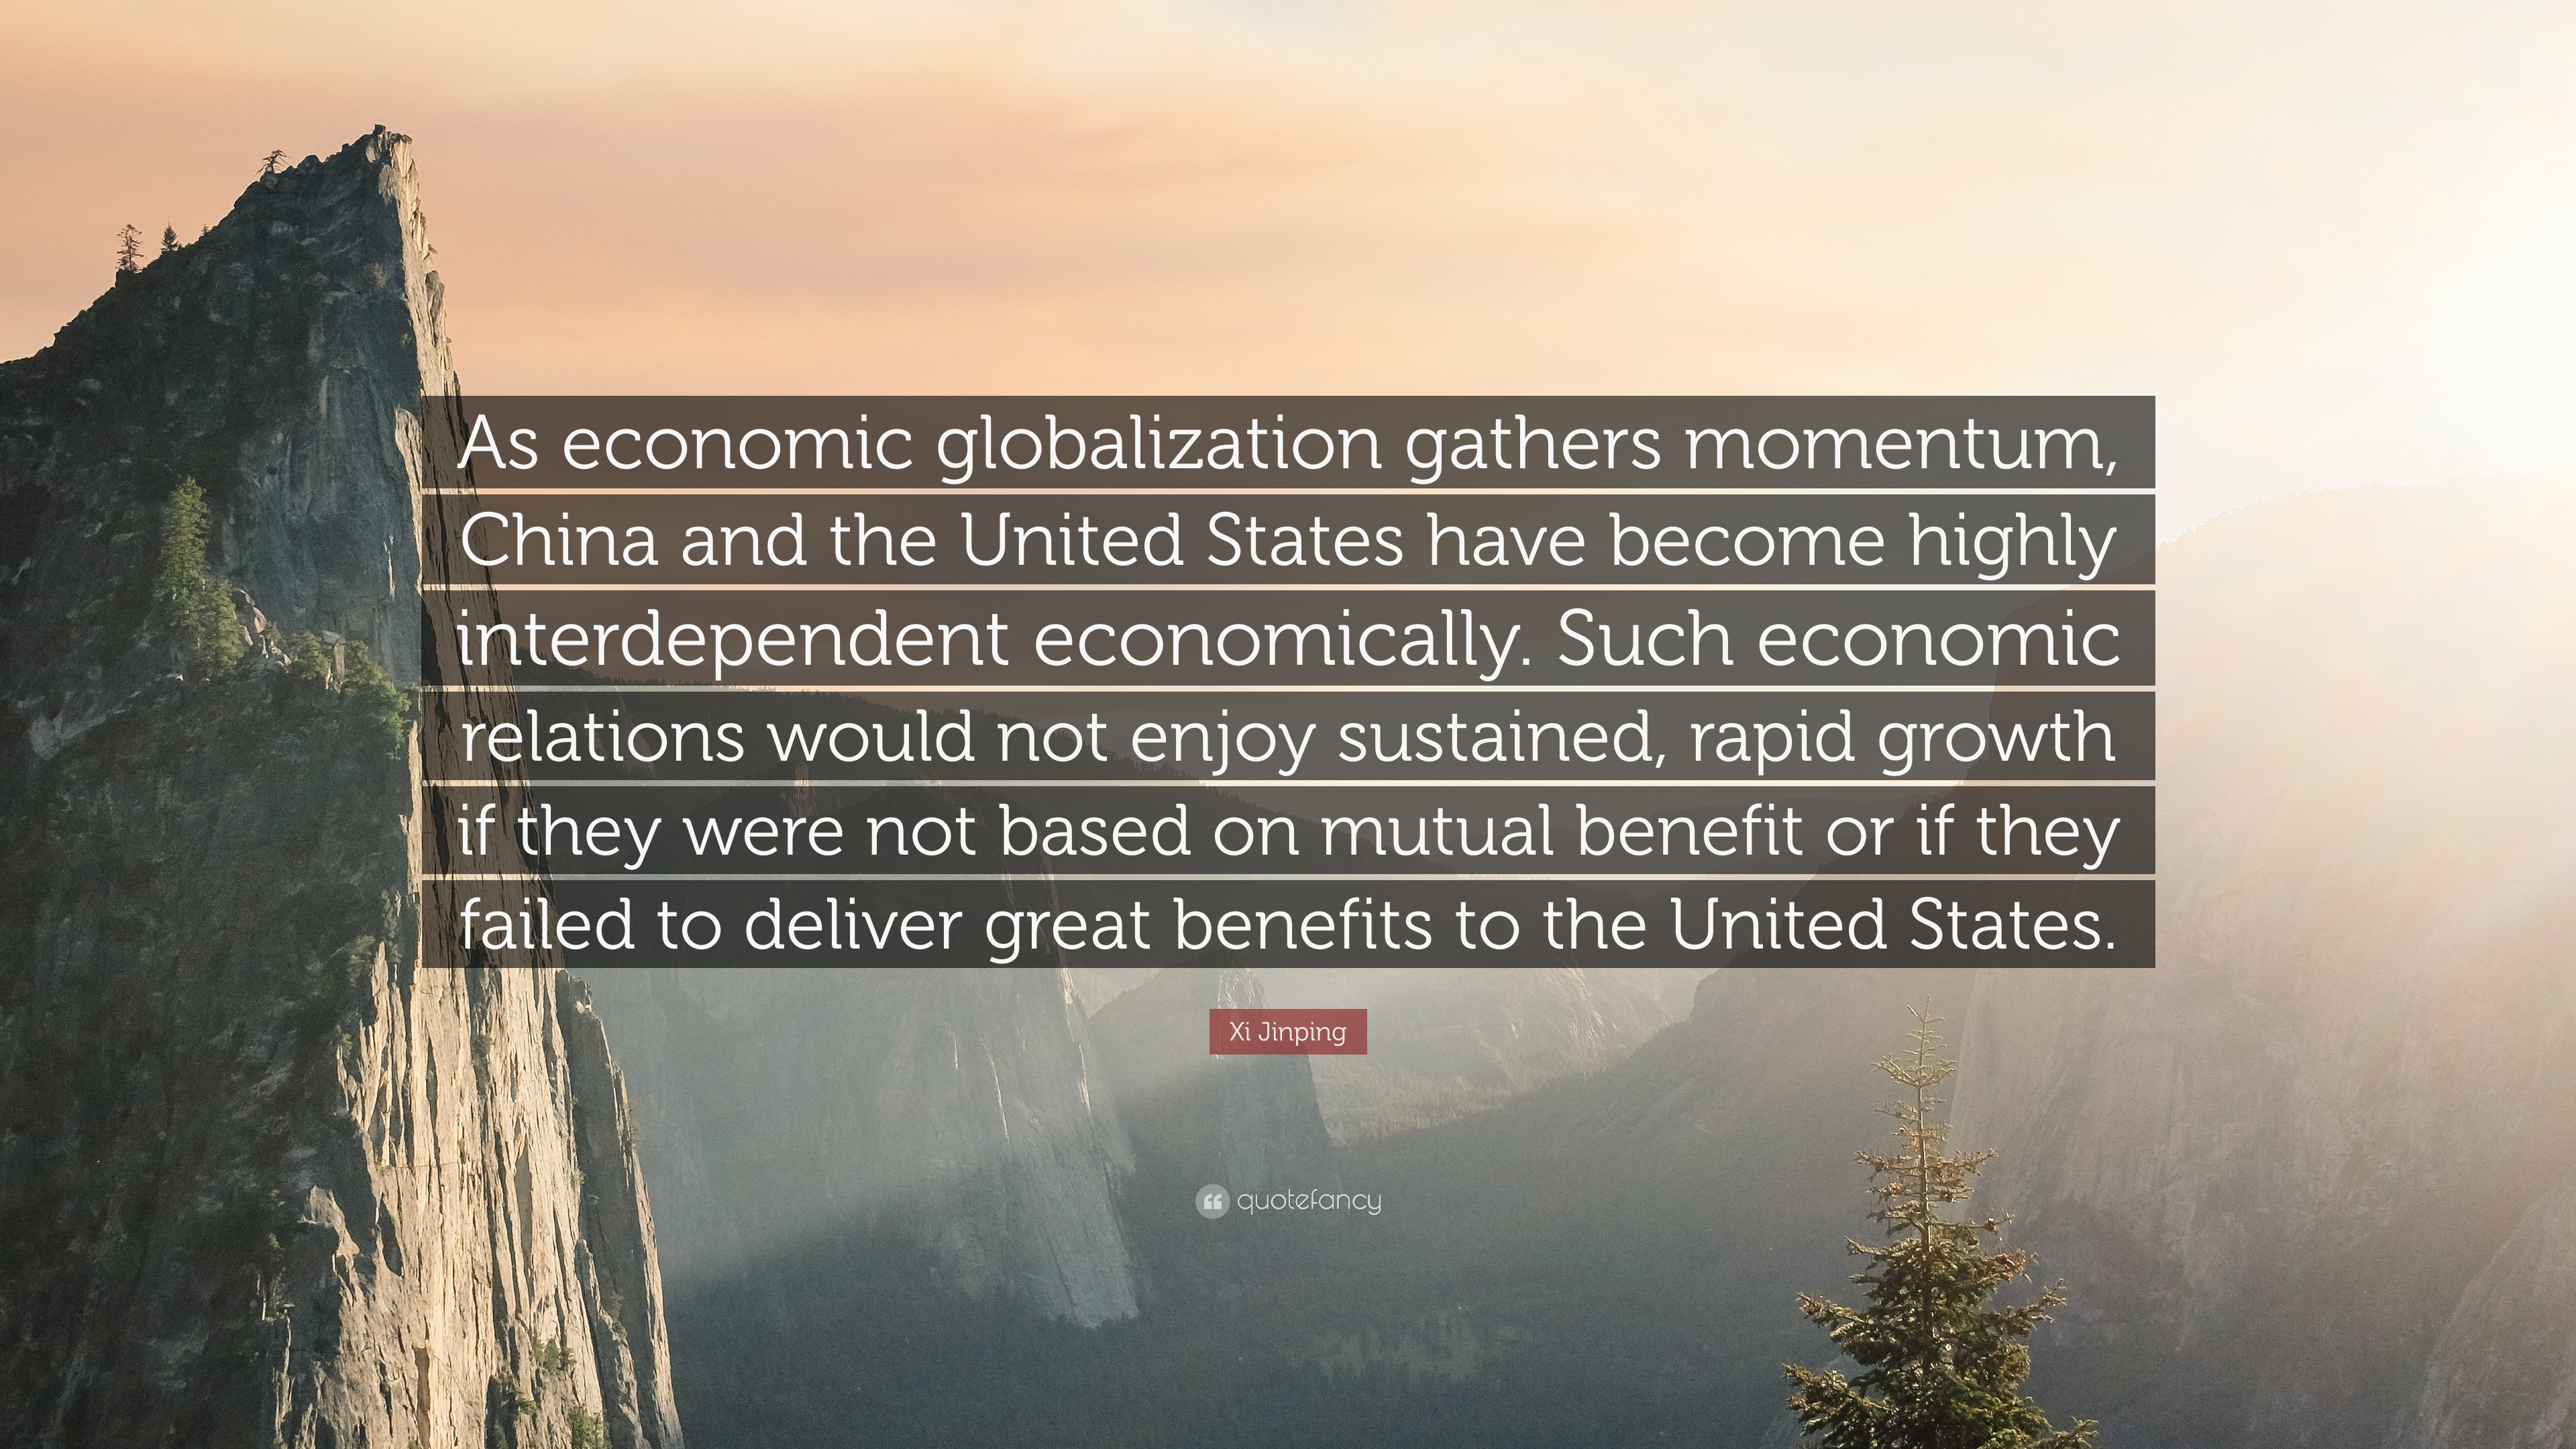 united states and china economic relation Mexico and the united states share a highly integrated economic relationship   by contrast, china only purchased $124 billion of us exports.